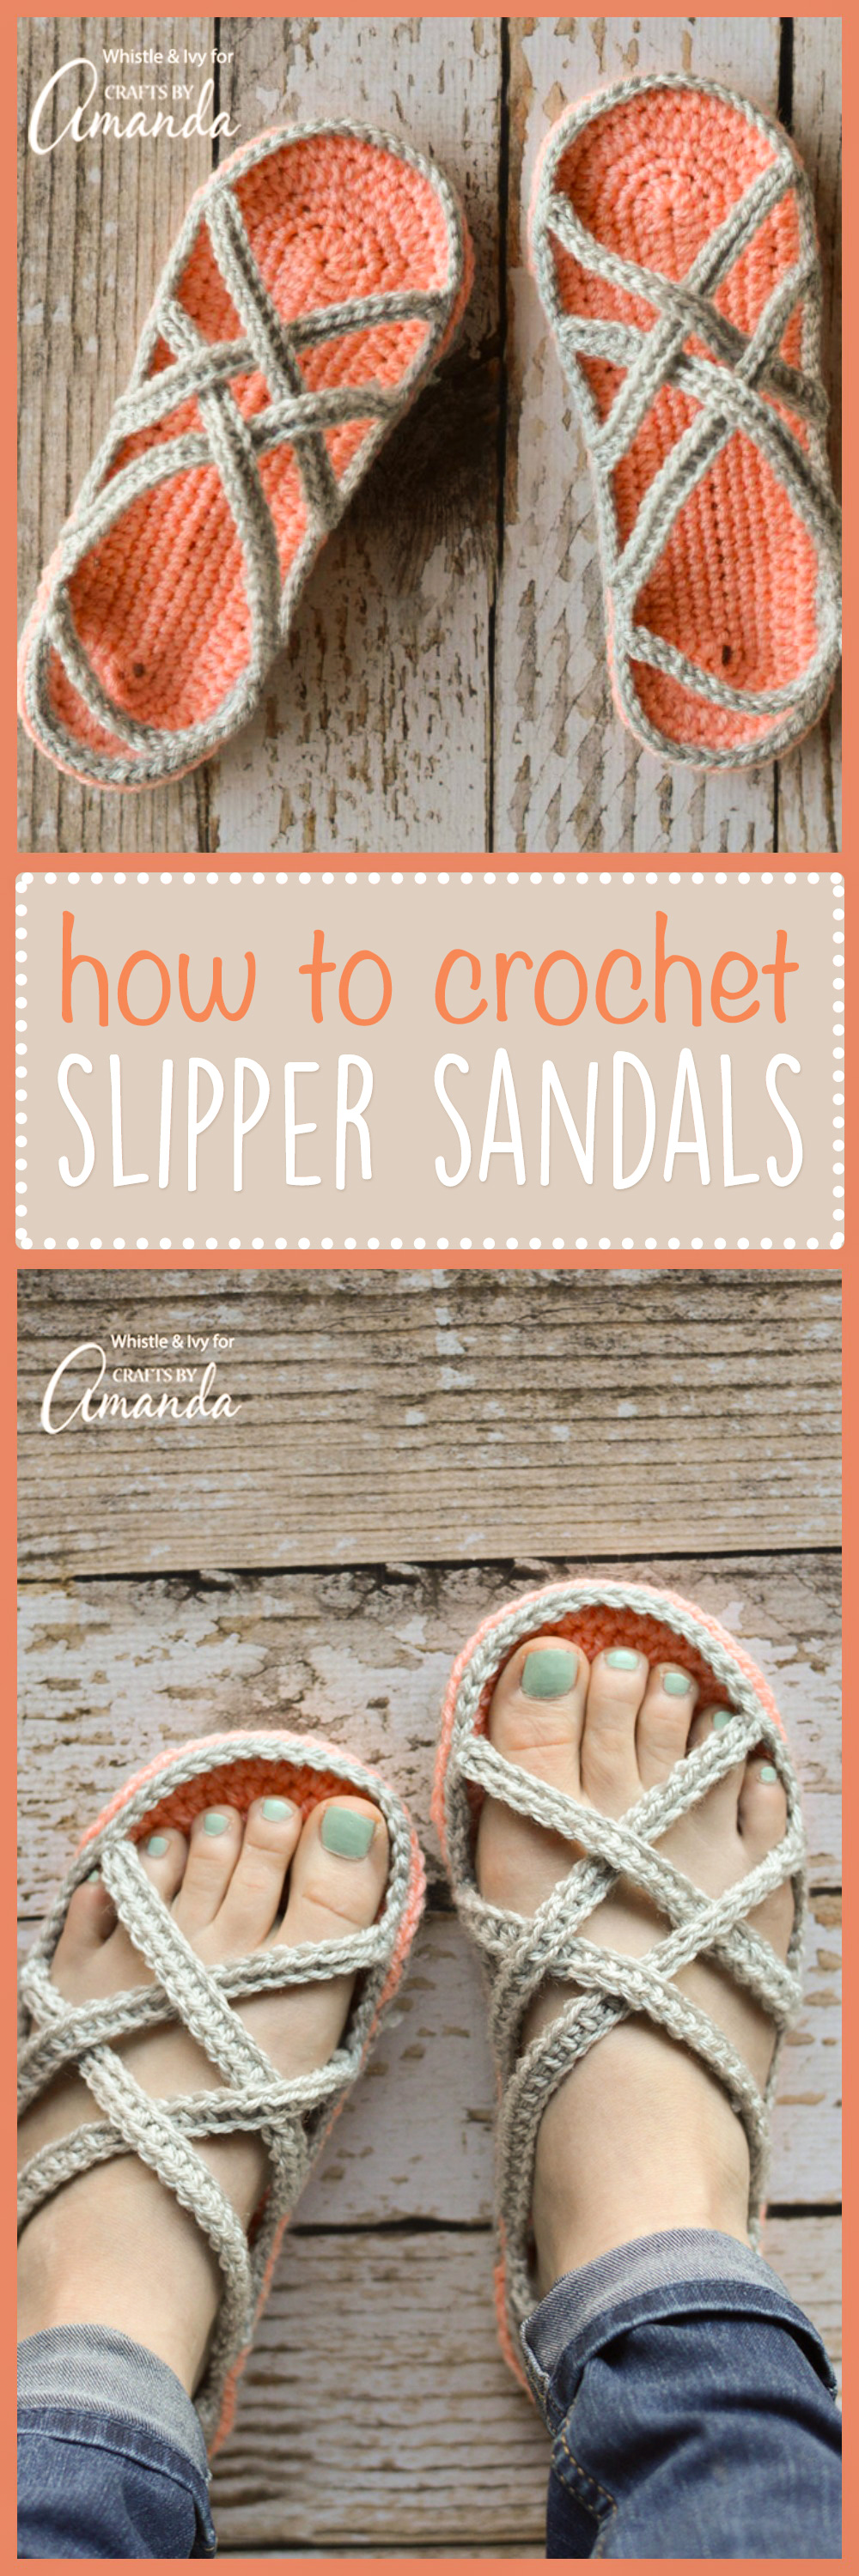 Crochet Slipper Sandals Free Pattern